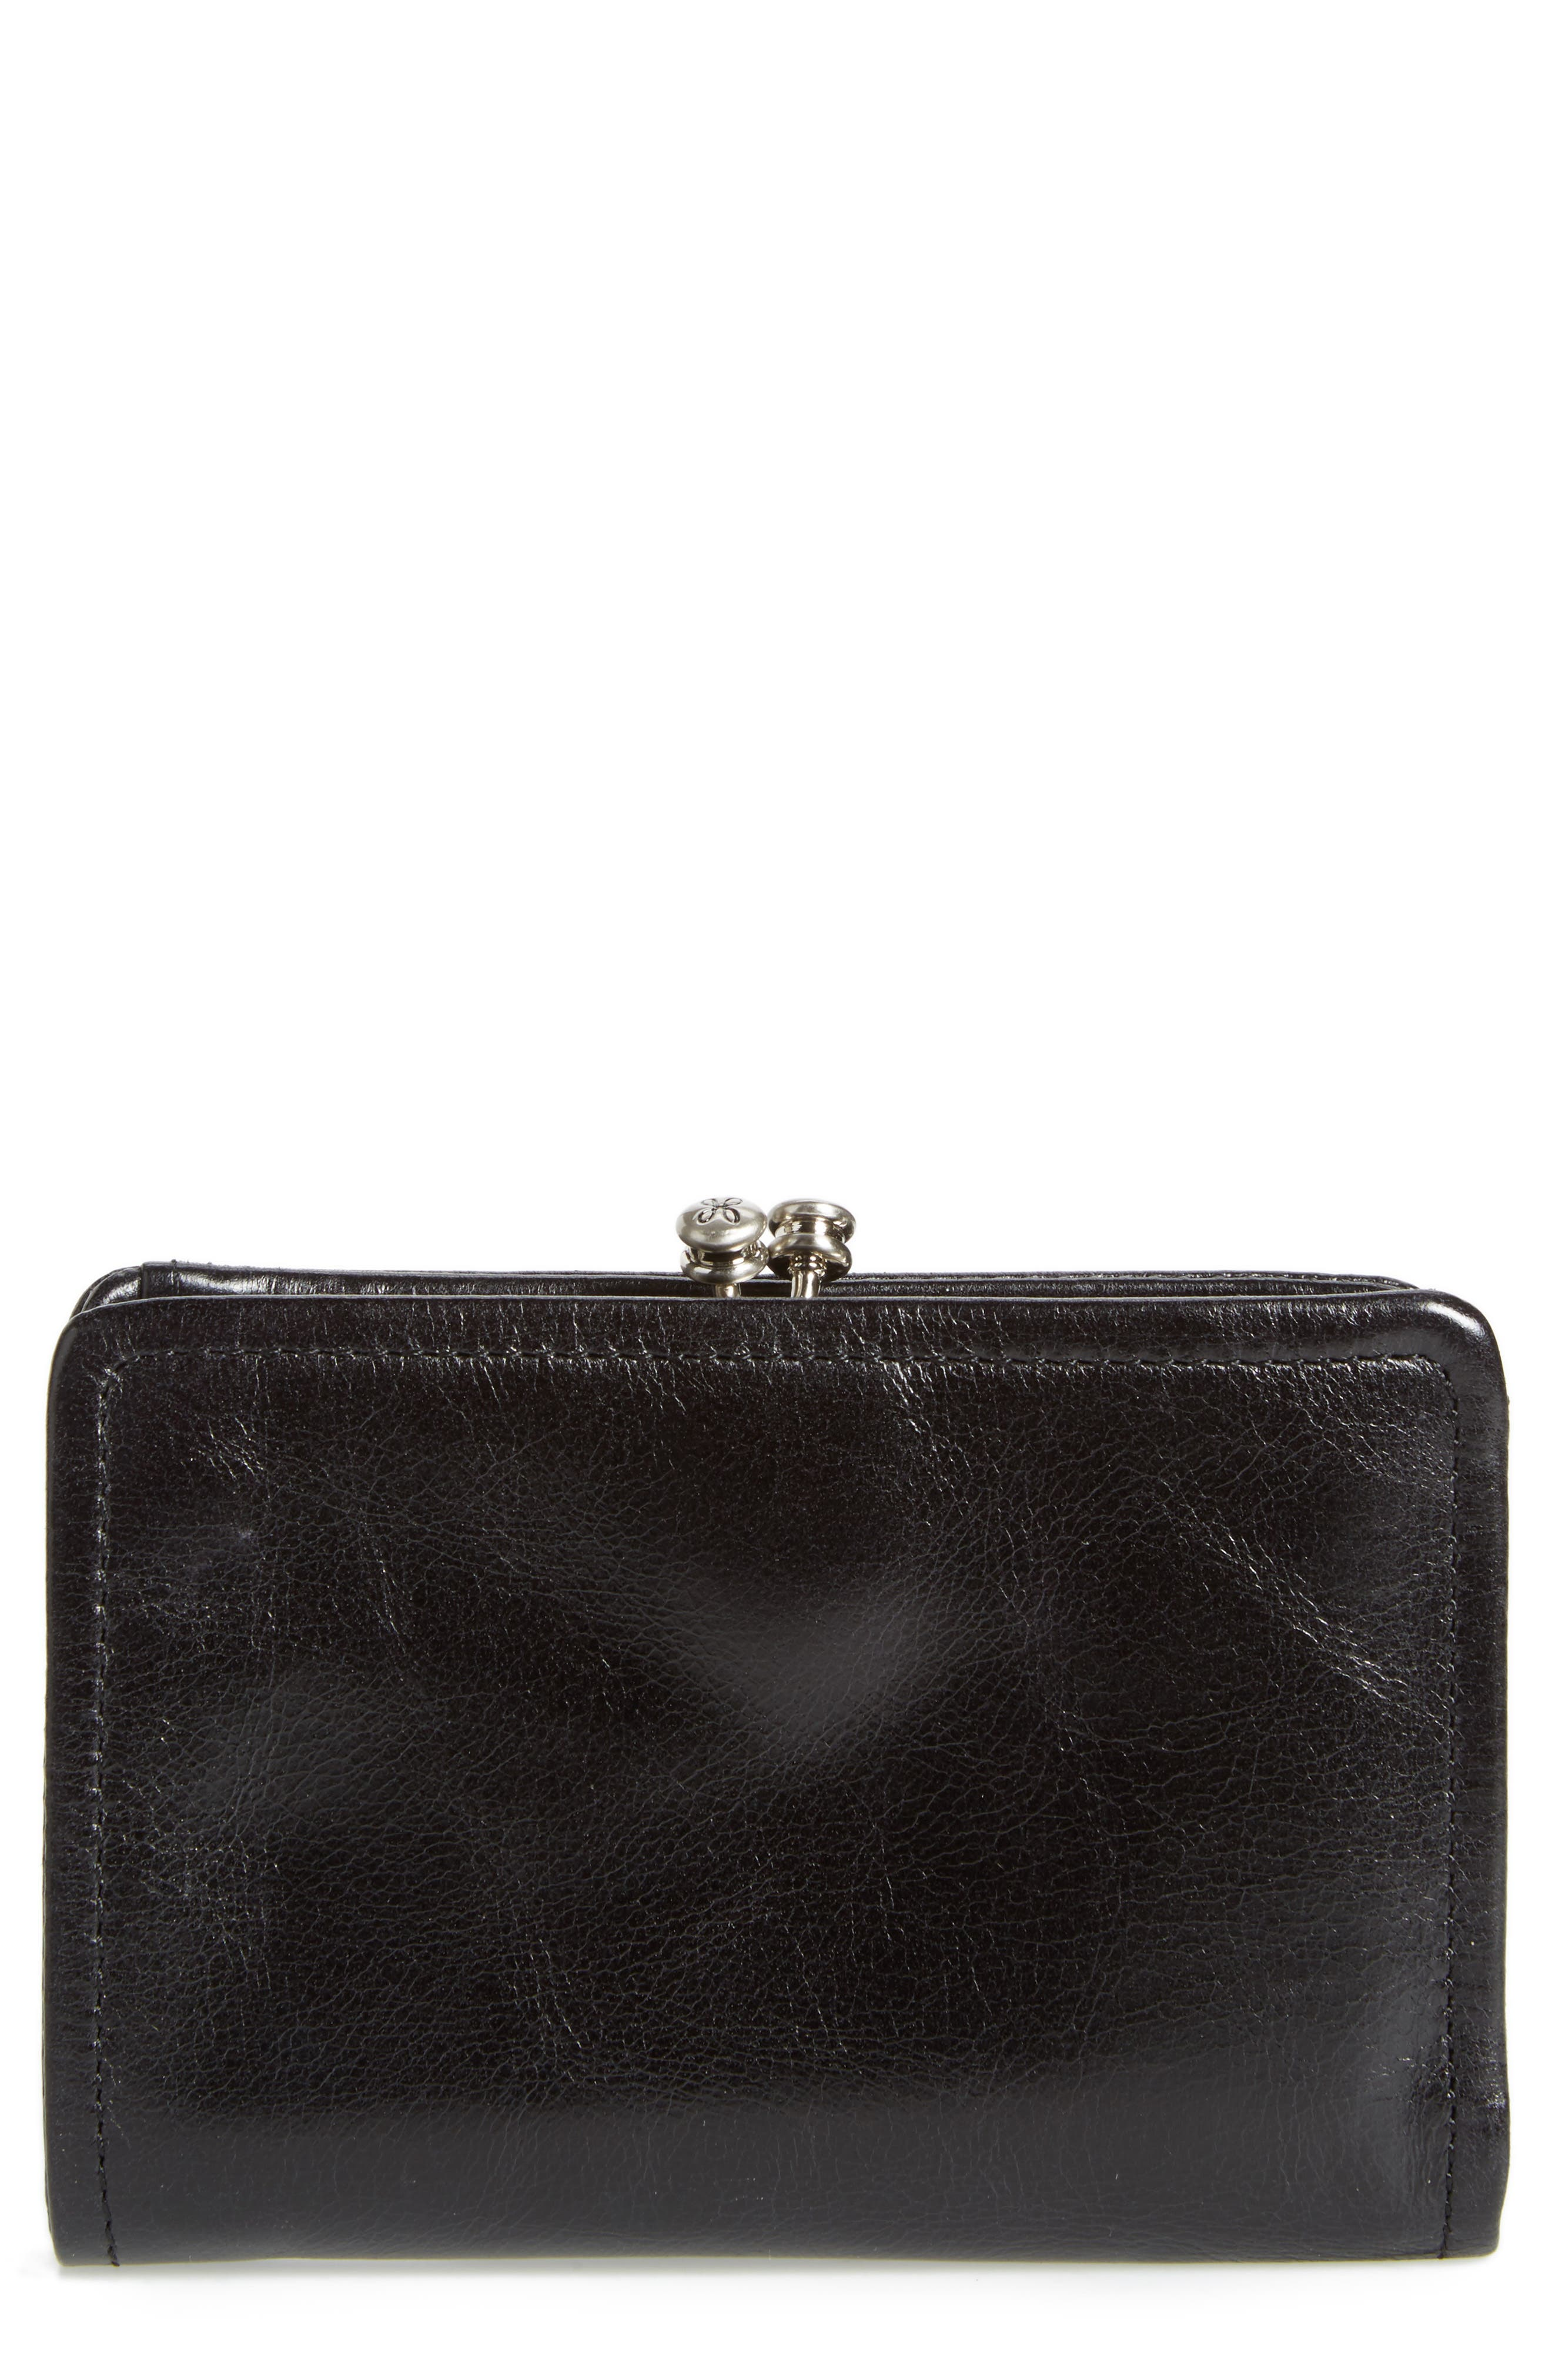 Delta Calfskin Leather Wallet,                         Main,                         color, 001